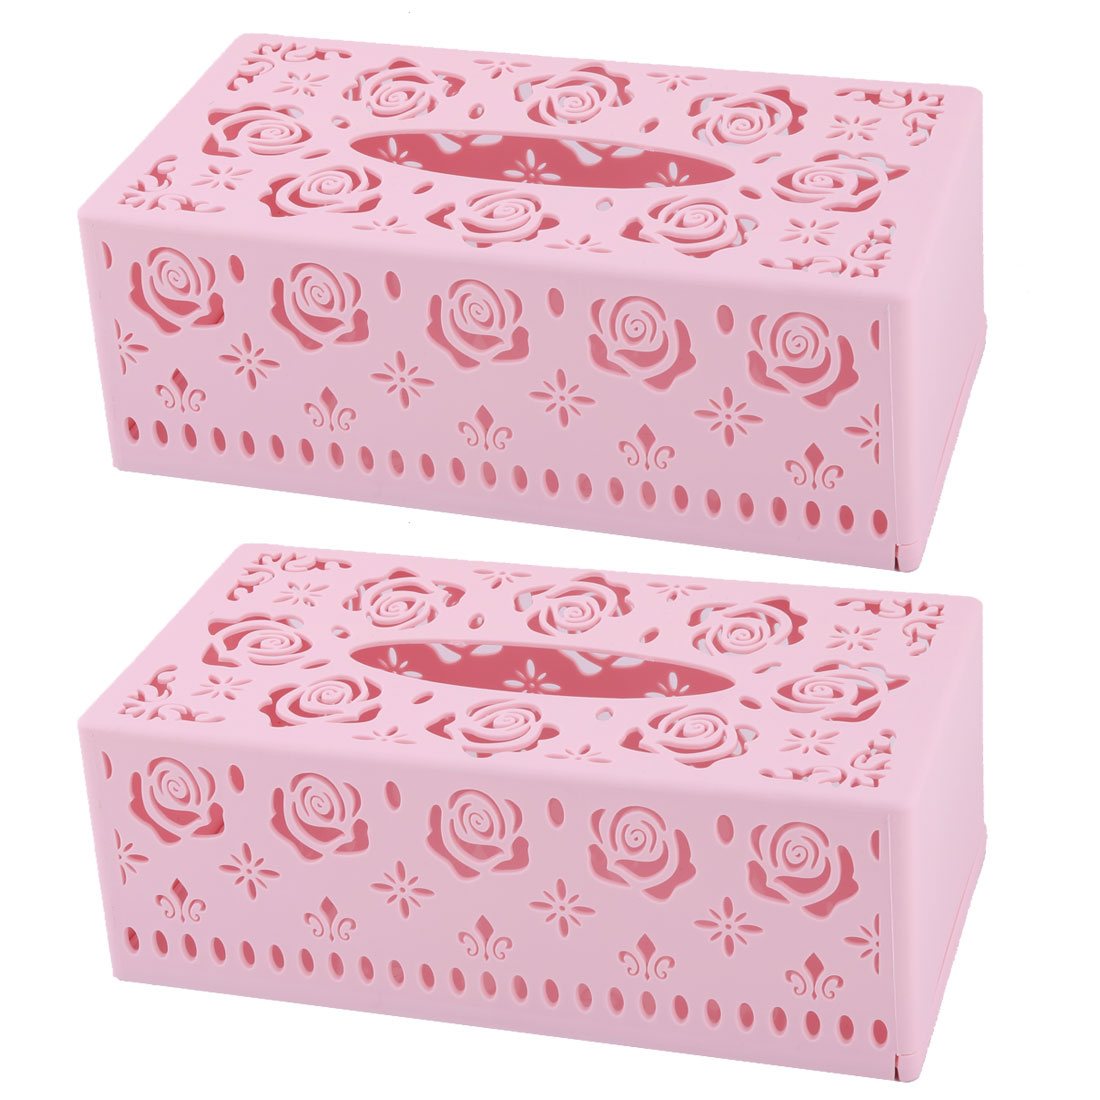 Home Plastic Rectangle Hollow Out Design Tissue Box Case Holder Organizer Light Pink 2pcs